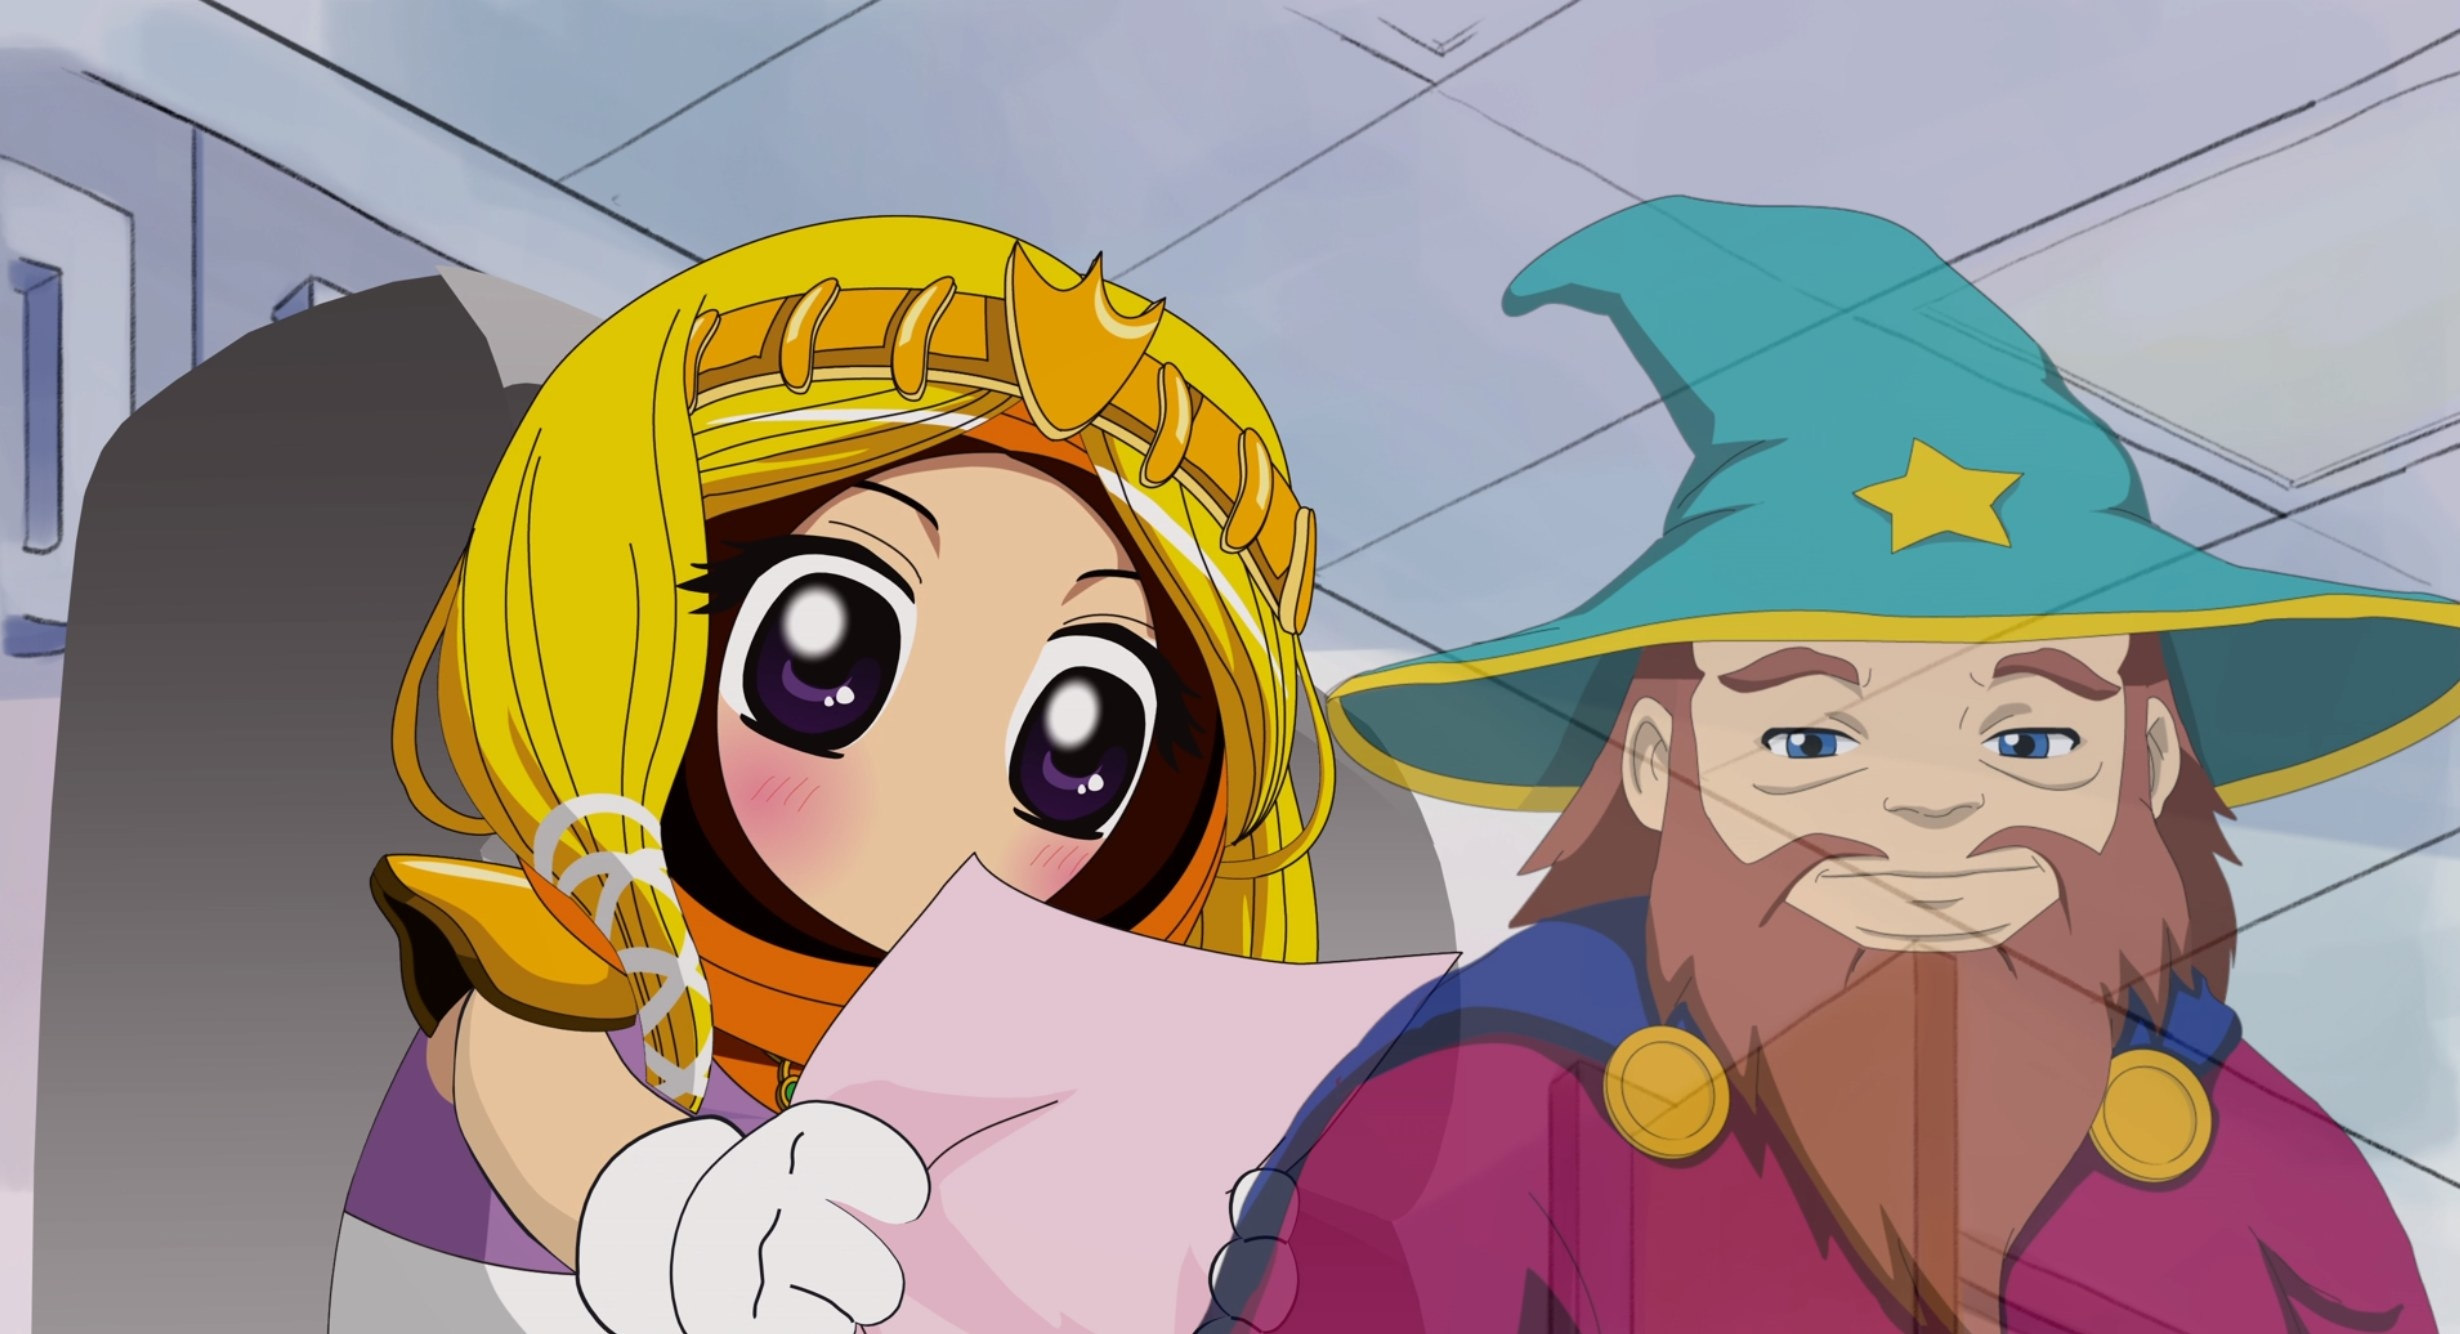 Princess Kenny receives letter from Wizard Cartman